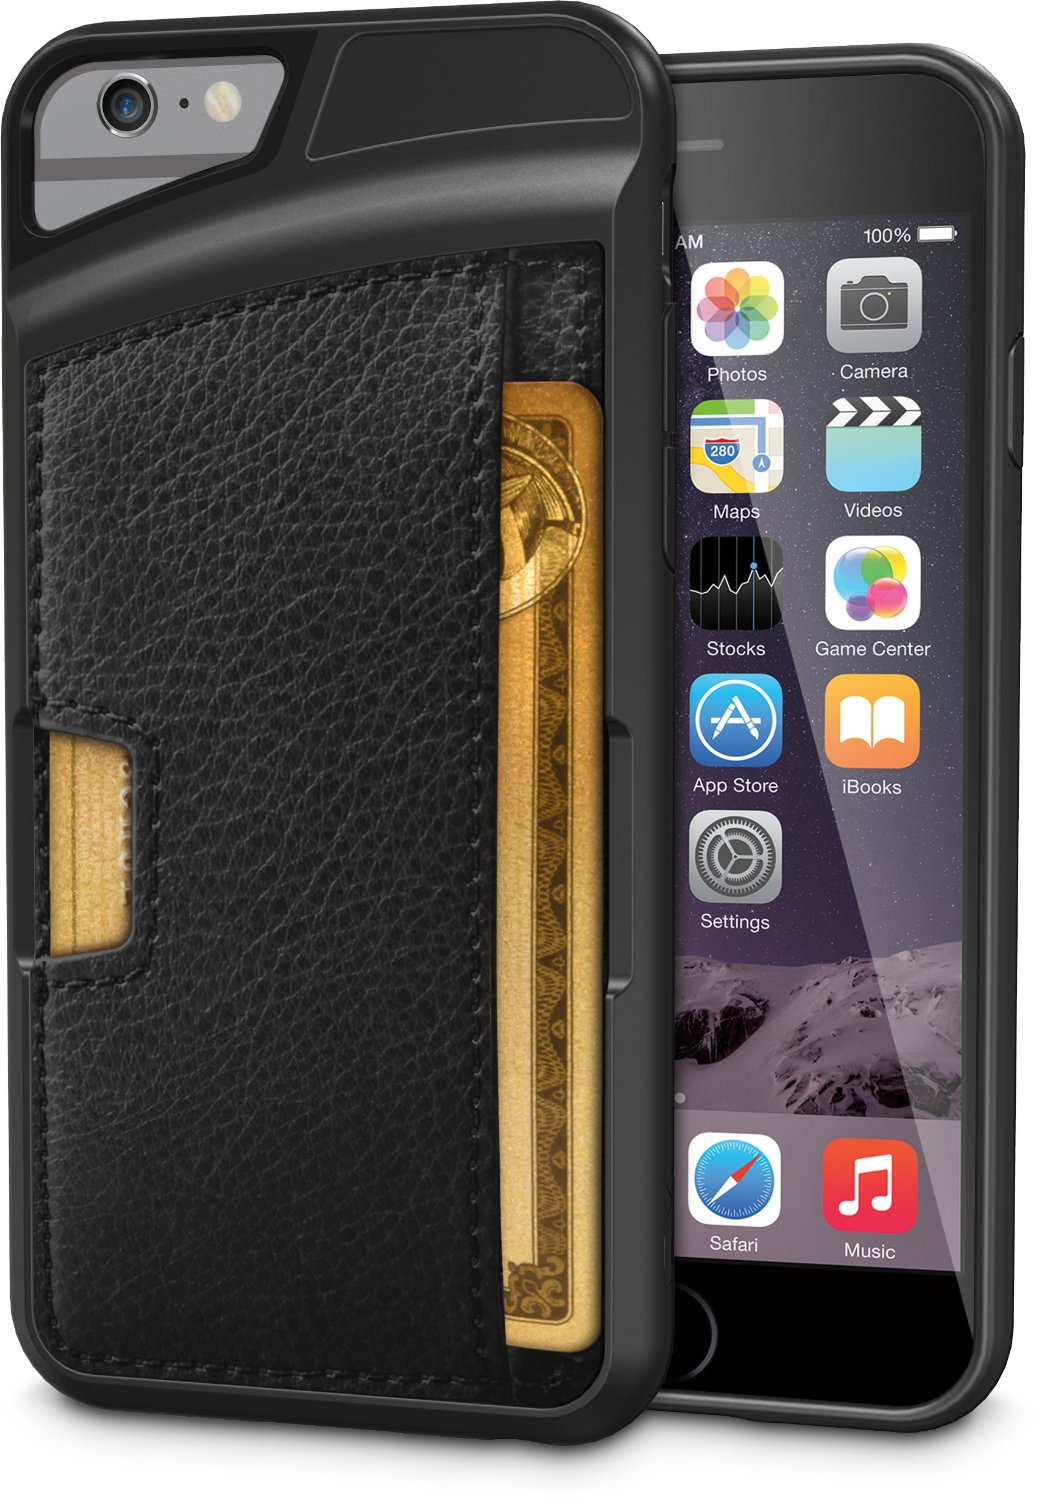 iPhone 6 Wallet Case; iPhone 6 cover; iPhone 6 case; ultra slim